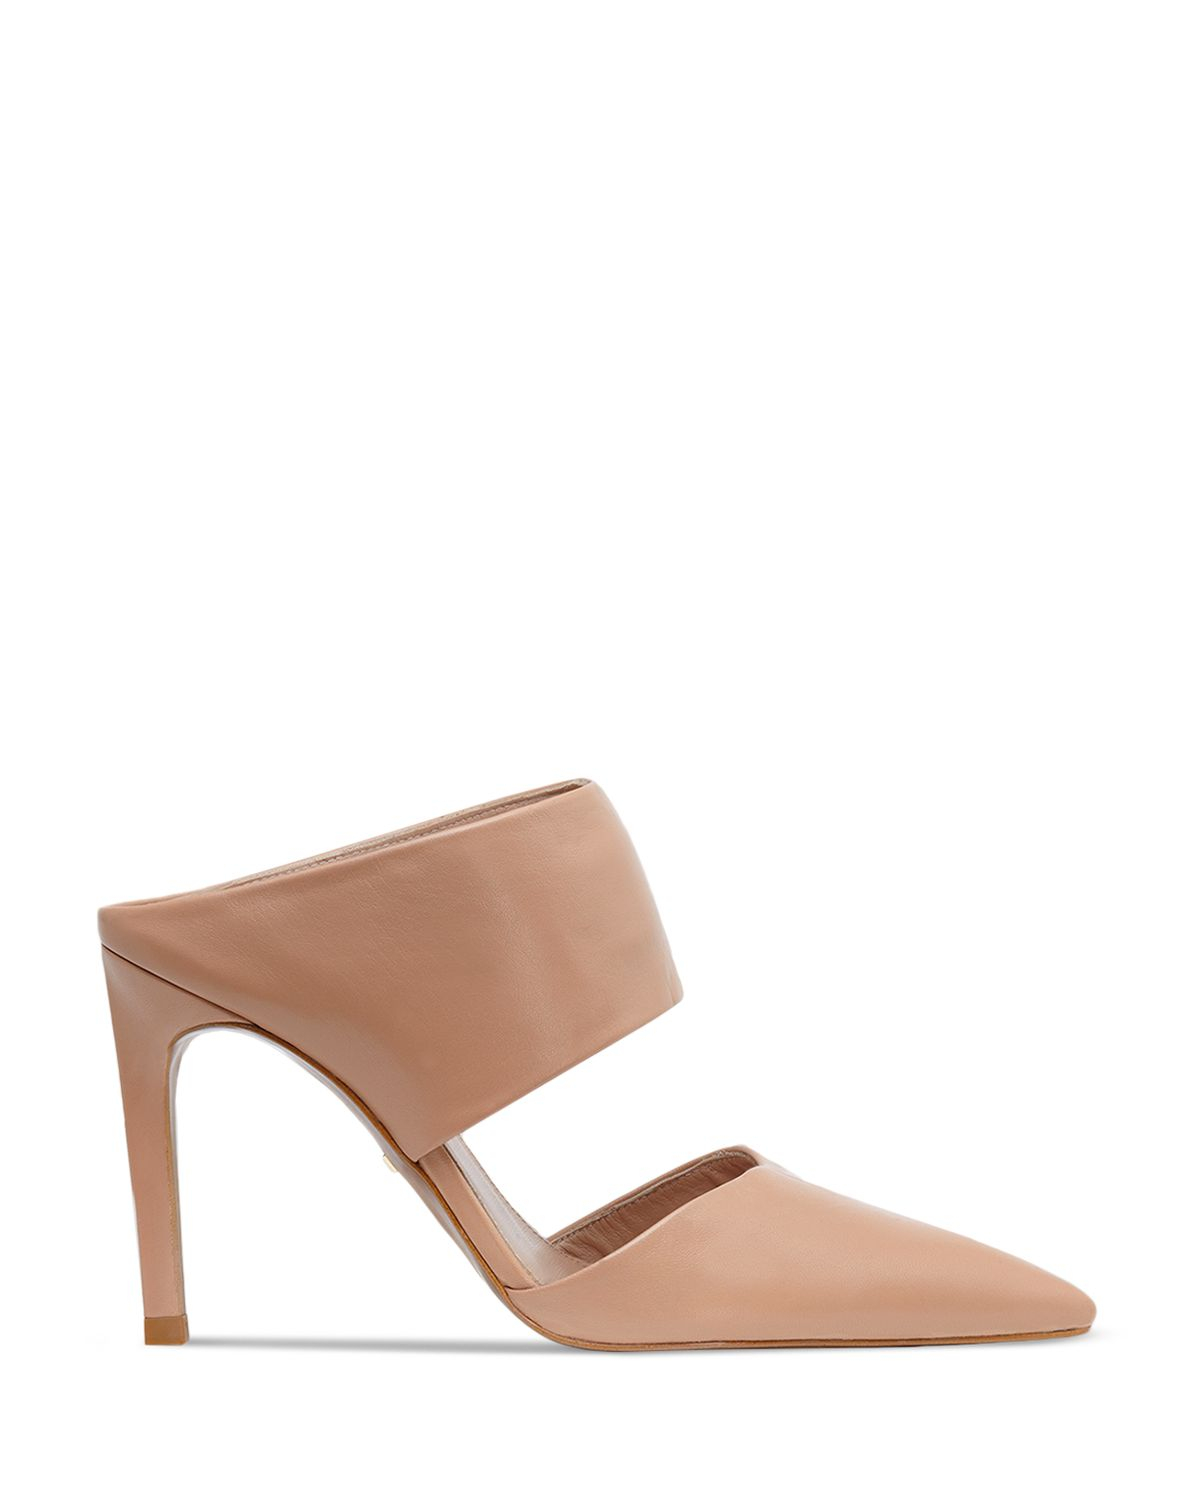 7e3e01bf746 Lyst - Whistles Mule Pumps - Tilla Pointed Toe in Natural